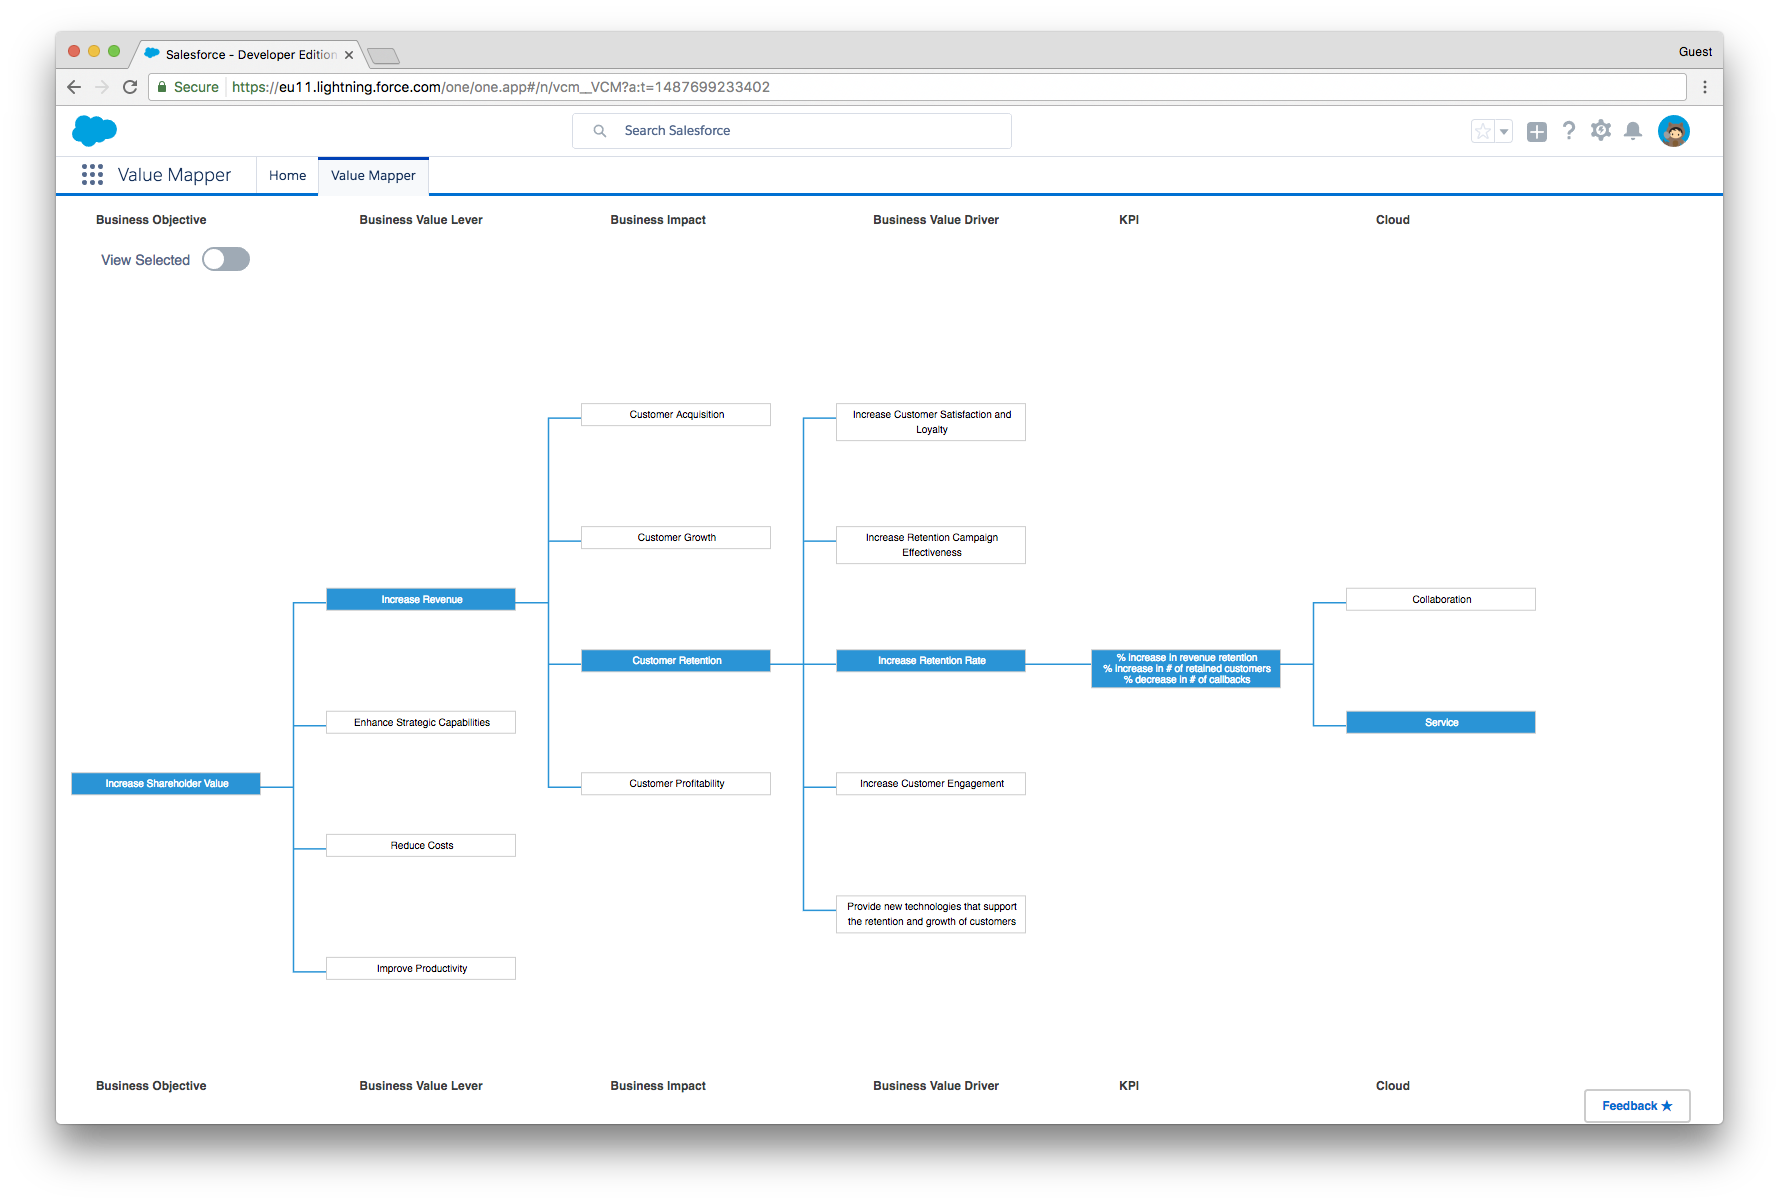 A Salesforce Premier Success Plan FeatureValue Mapper